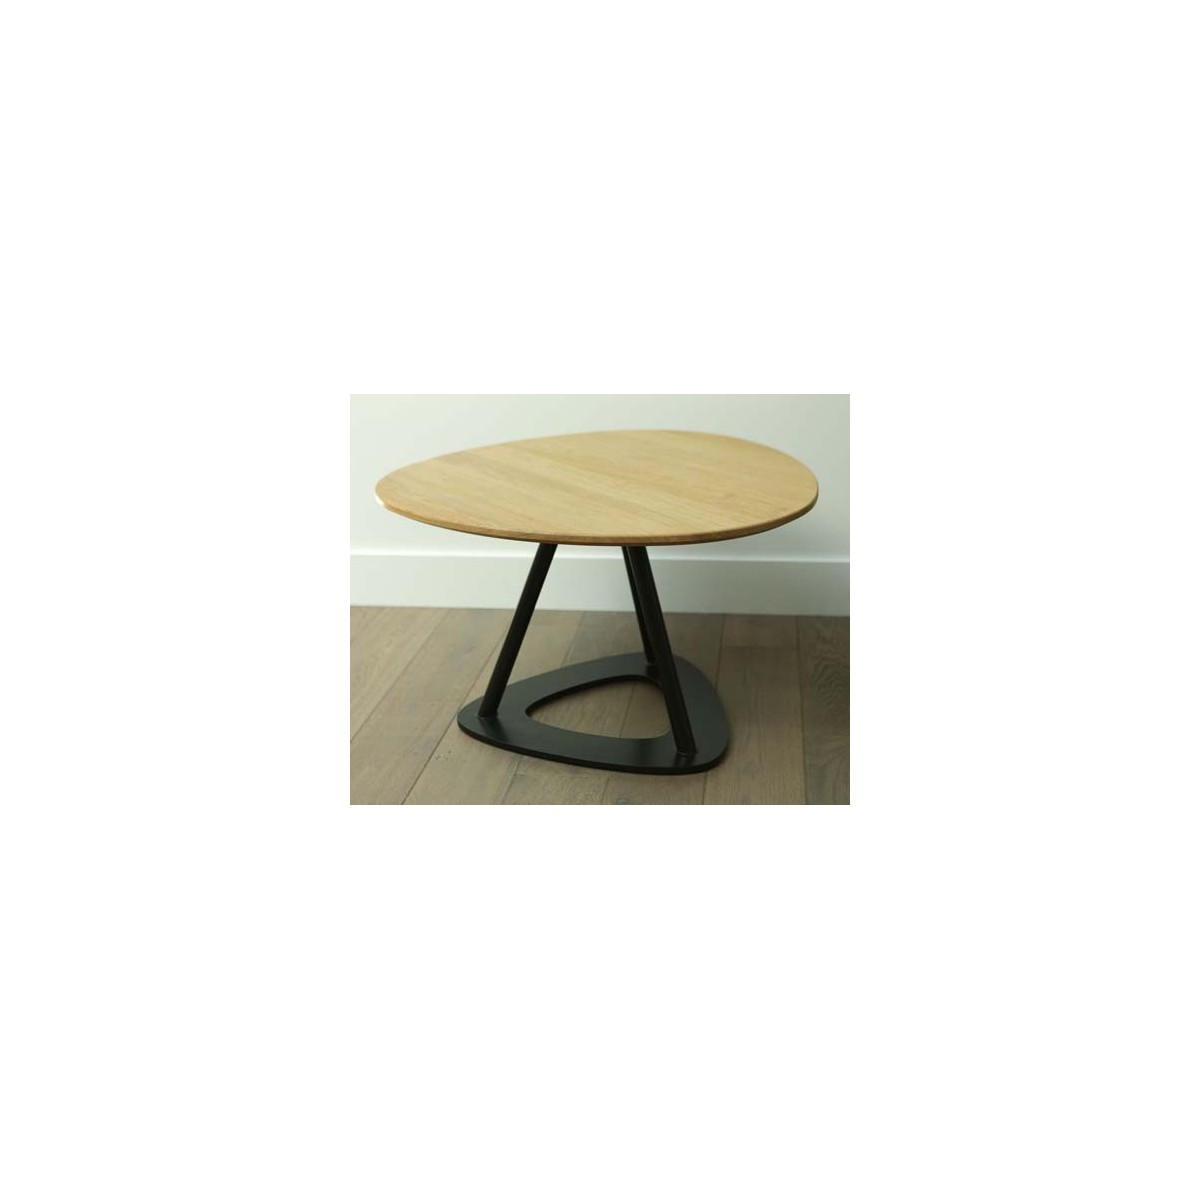 Table Basse Moderne Bois - Table Basse En Bois Contemporaine u2013 Ezooq com